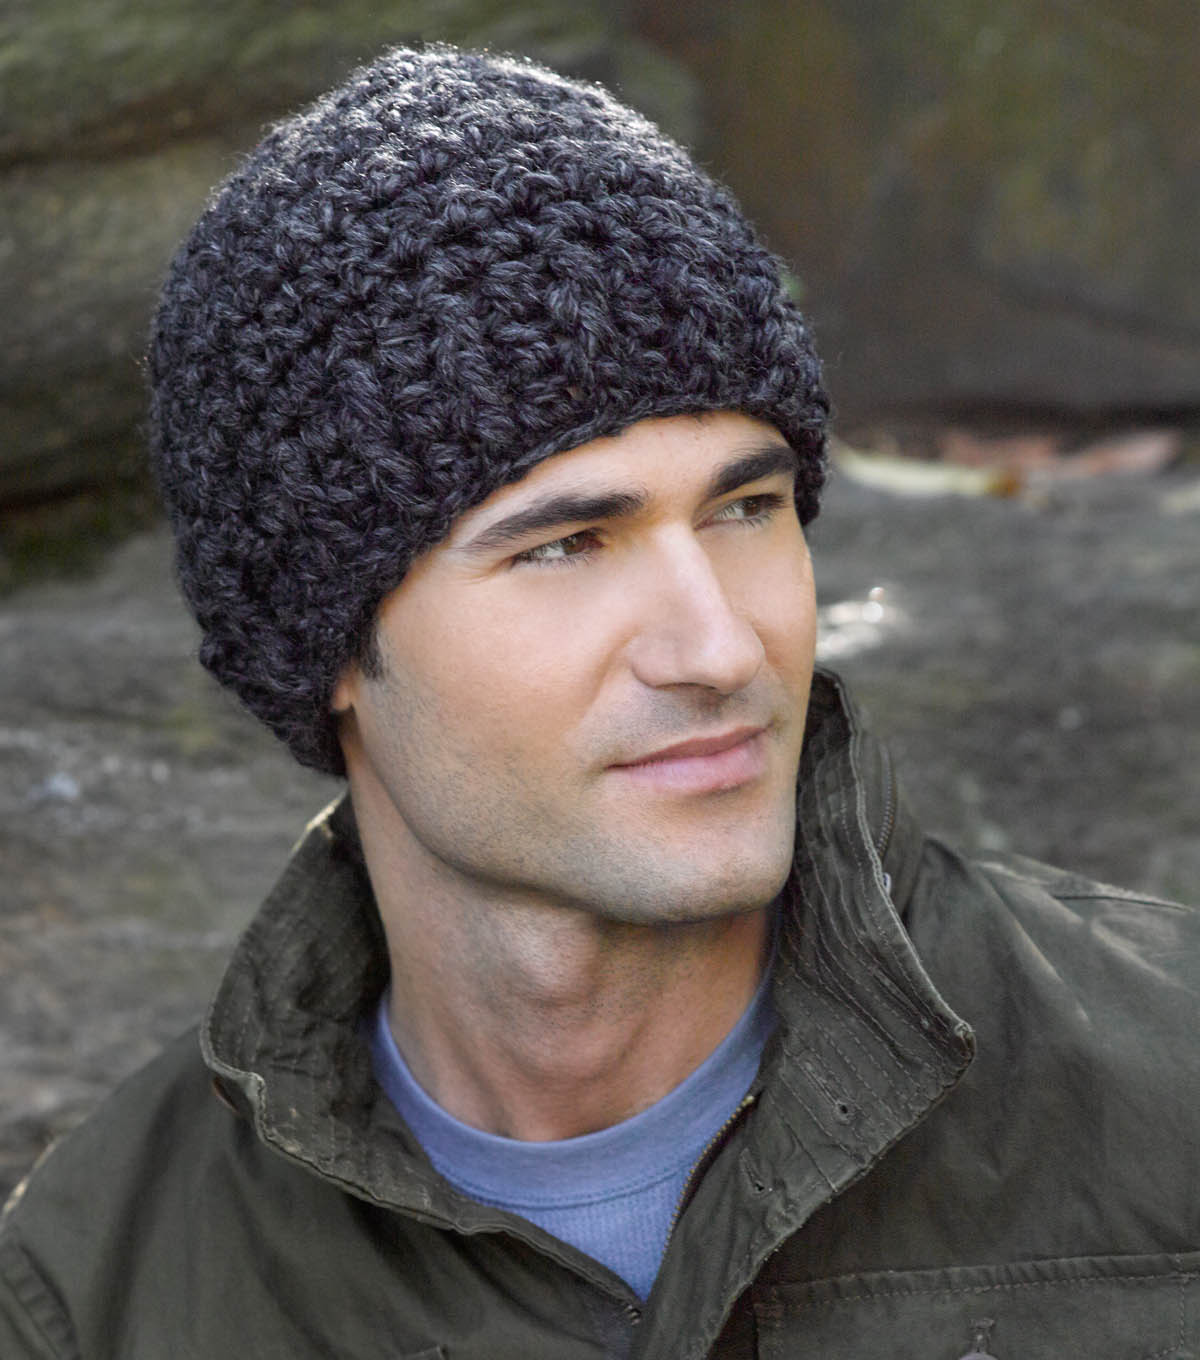 Husband-Approved Crochet Hats for Men - Sewrella 06b3a3611be